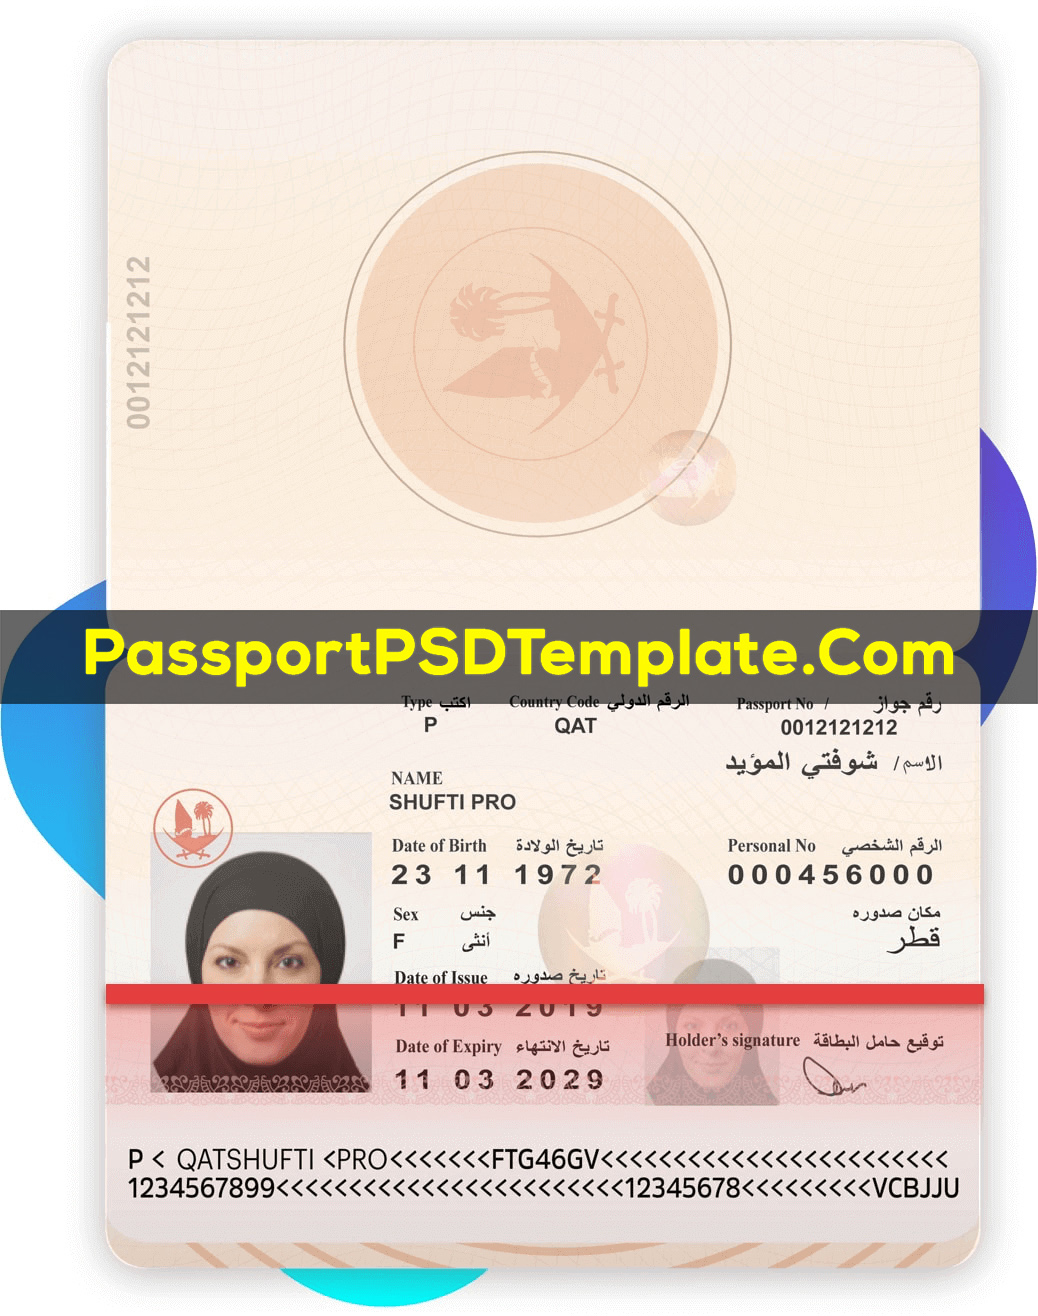 qatar Passport Template PSD Photoshop Editable Drivers License Fake ID Card Maker PayPal Bitcoin